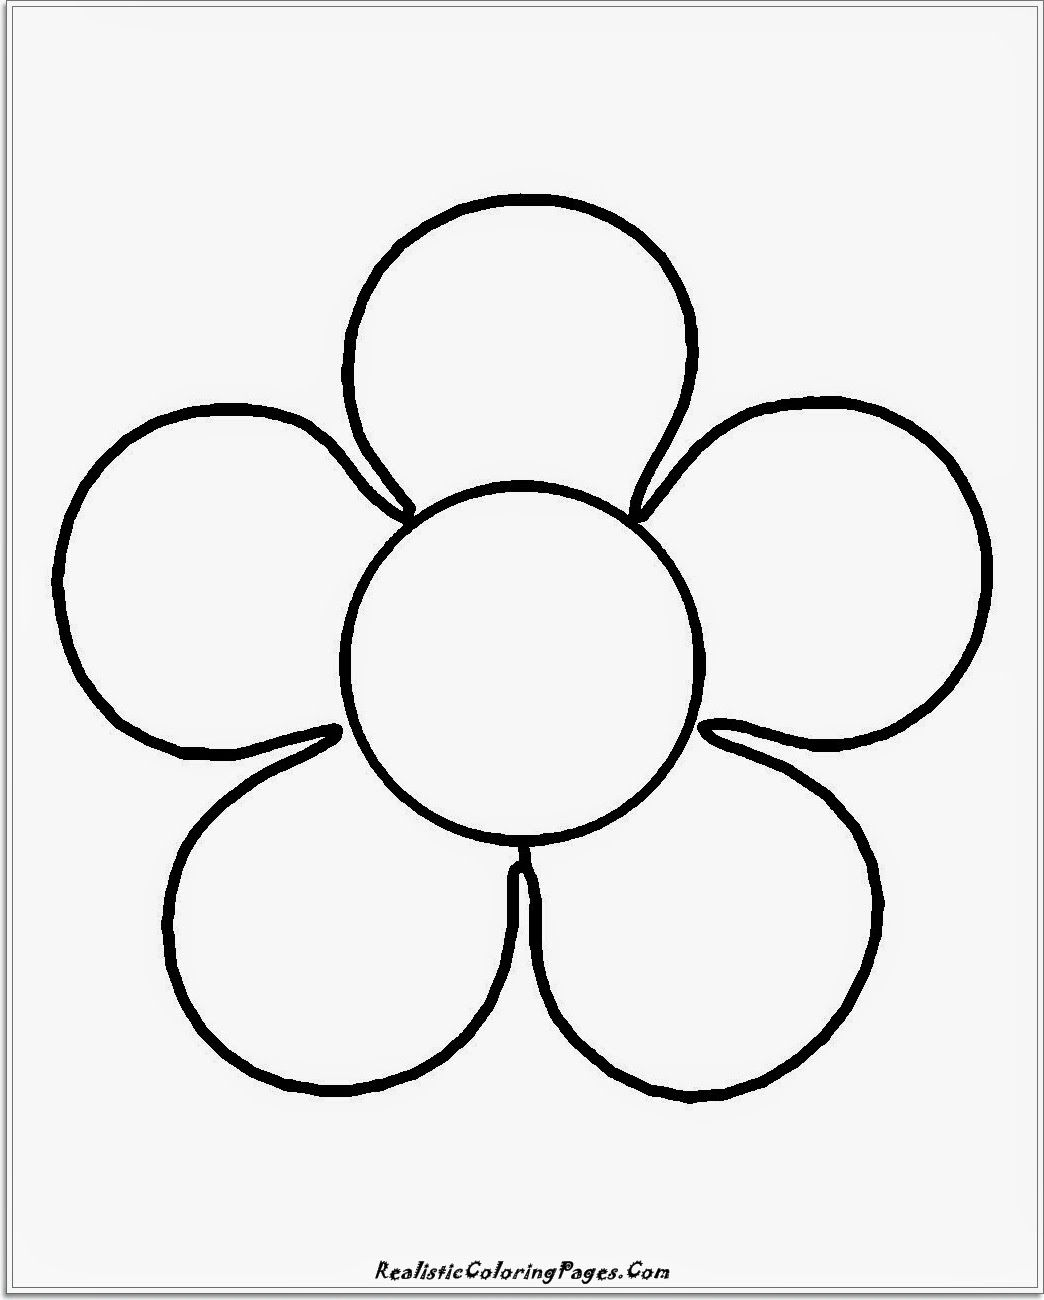 Easy Flower Coloring Pages Coloring Home Easy Flower Coloring Pages